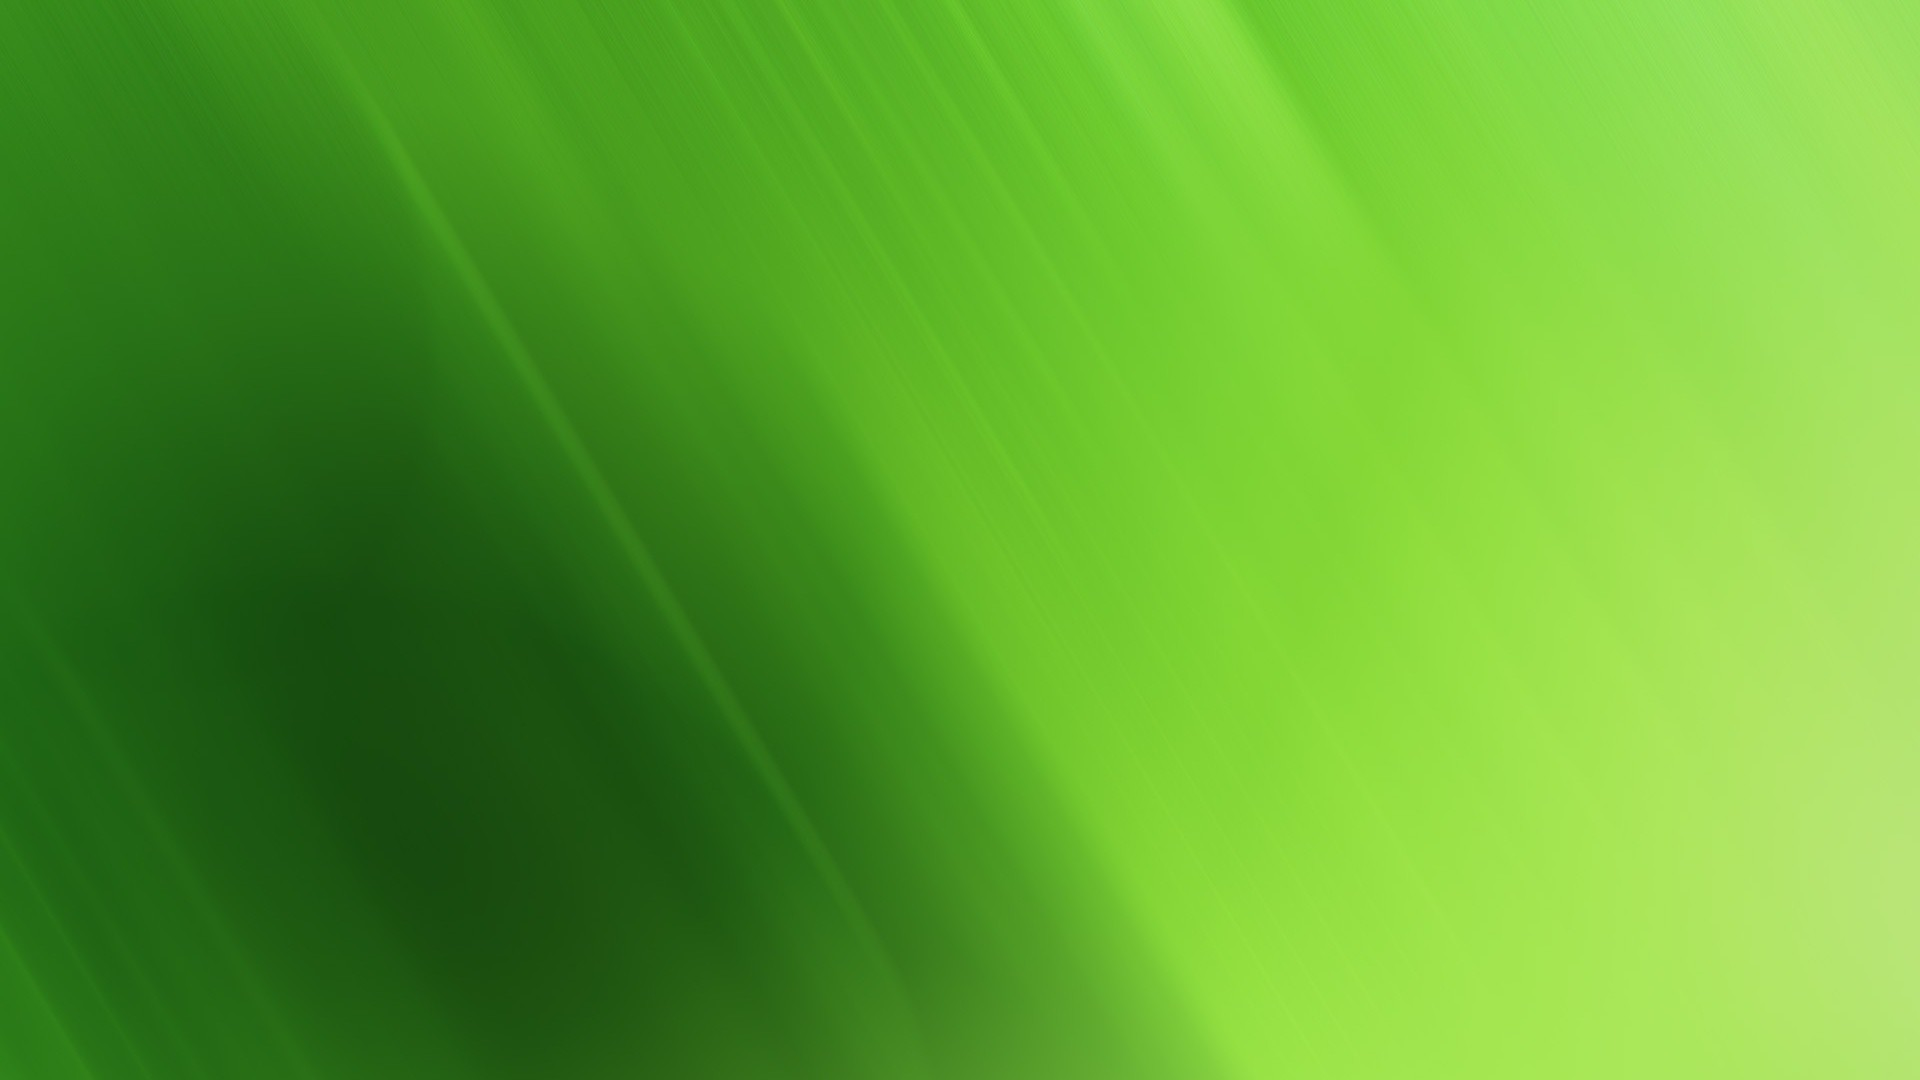 1920x1080 green wallpapers hd download